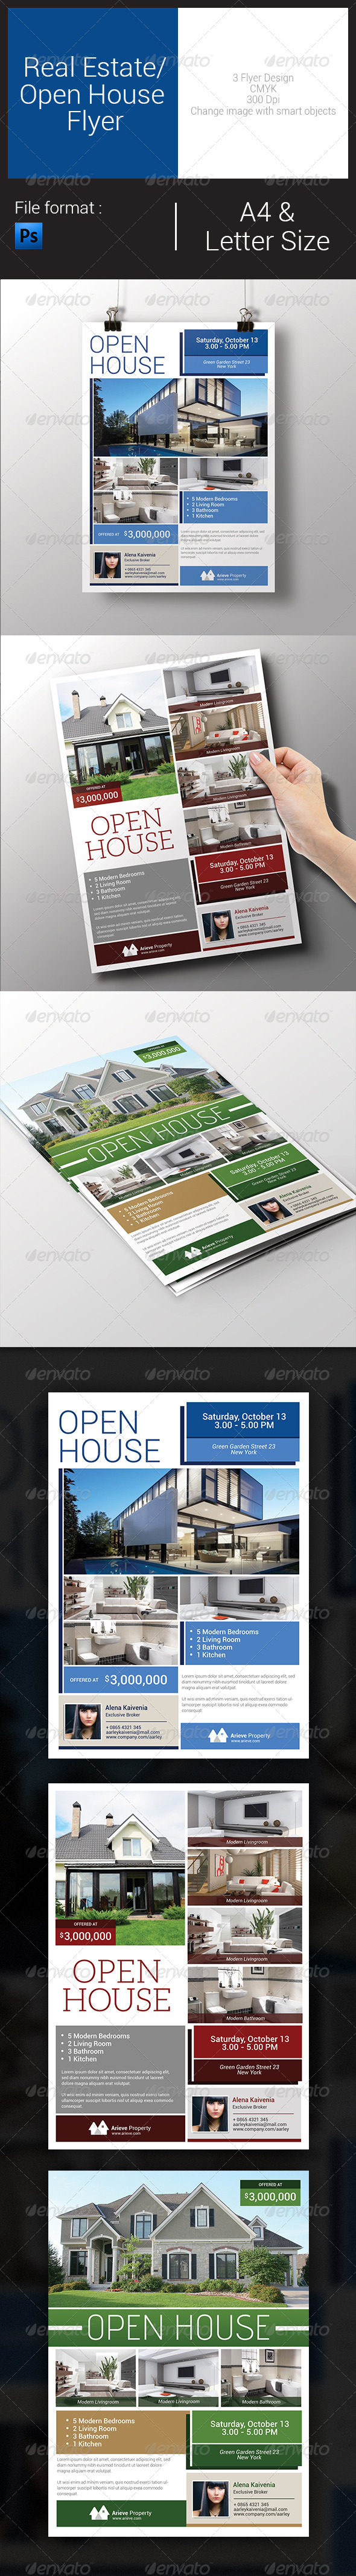 GraphicRiver Real Estate Open House Flyer 7933432